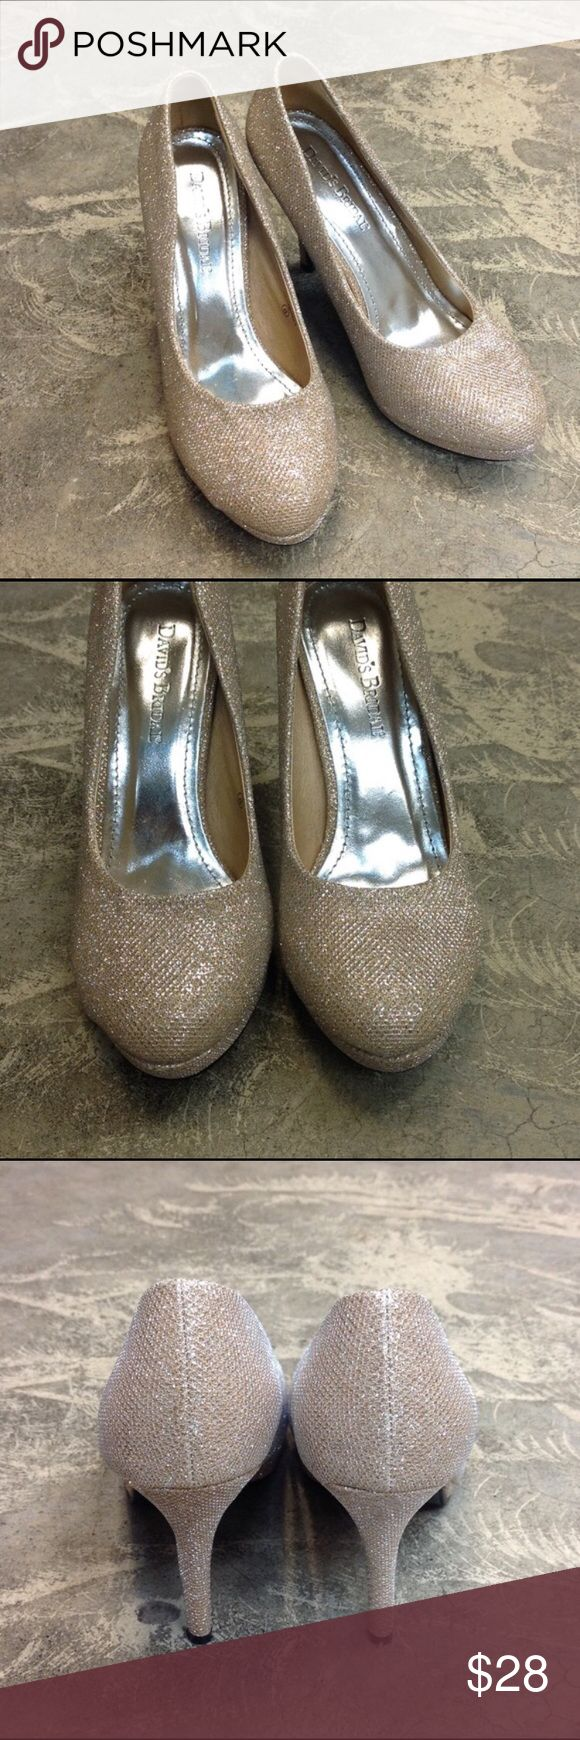 Gold sparkle pumps Davids Bridal Bought these from another posher that only wore them once. Wanted them for my friends wedding but she changed her mind on the shoe color so I'm selling them.  I haven't worn them at all.  They would be perfect for a wedding. David's Bridal Shoes Heels